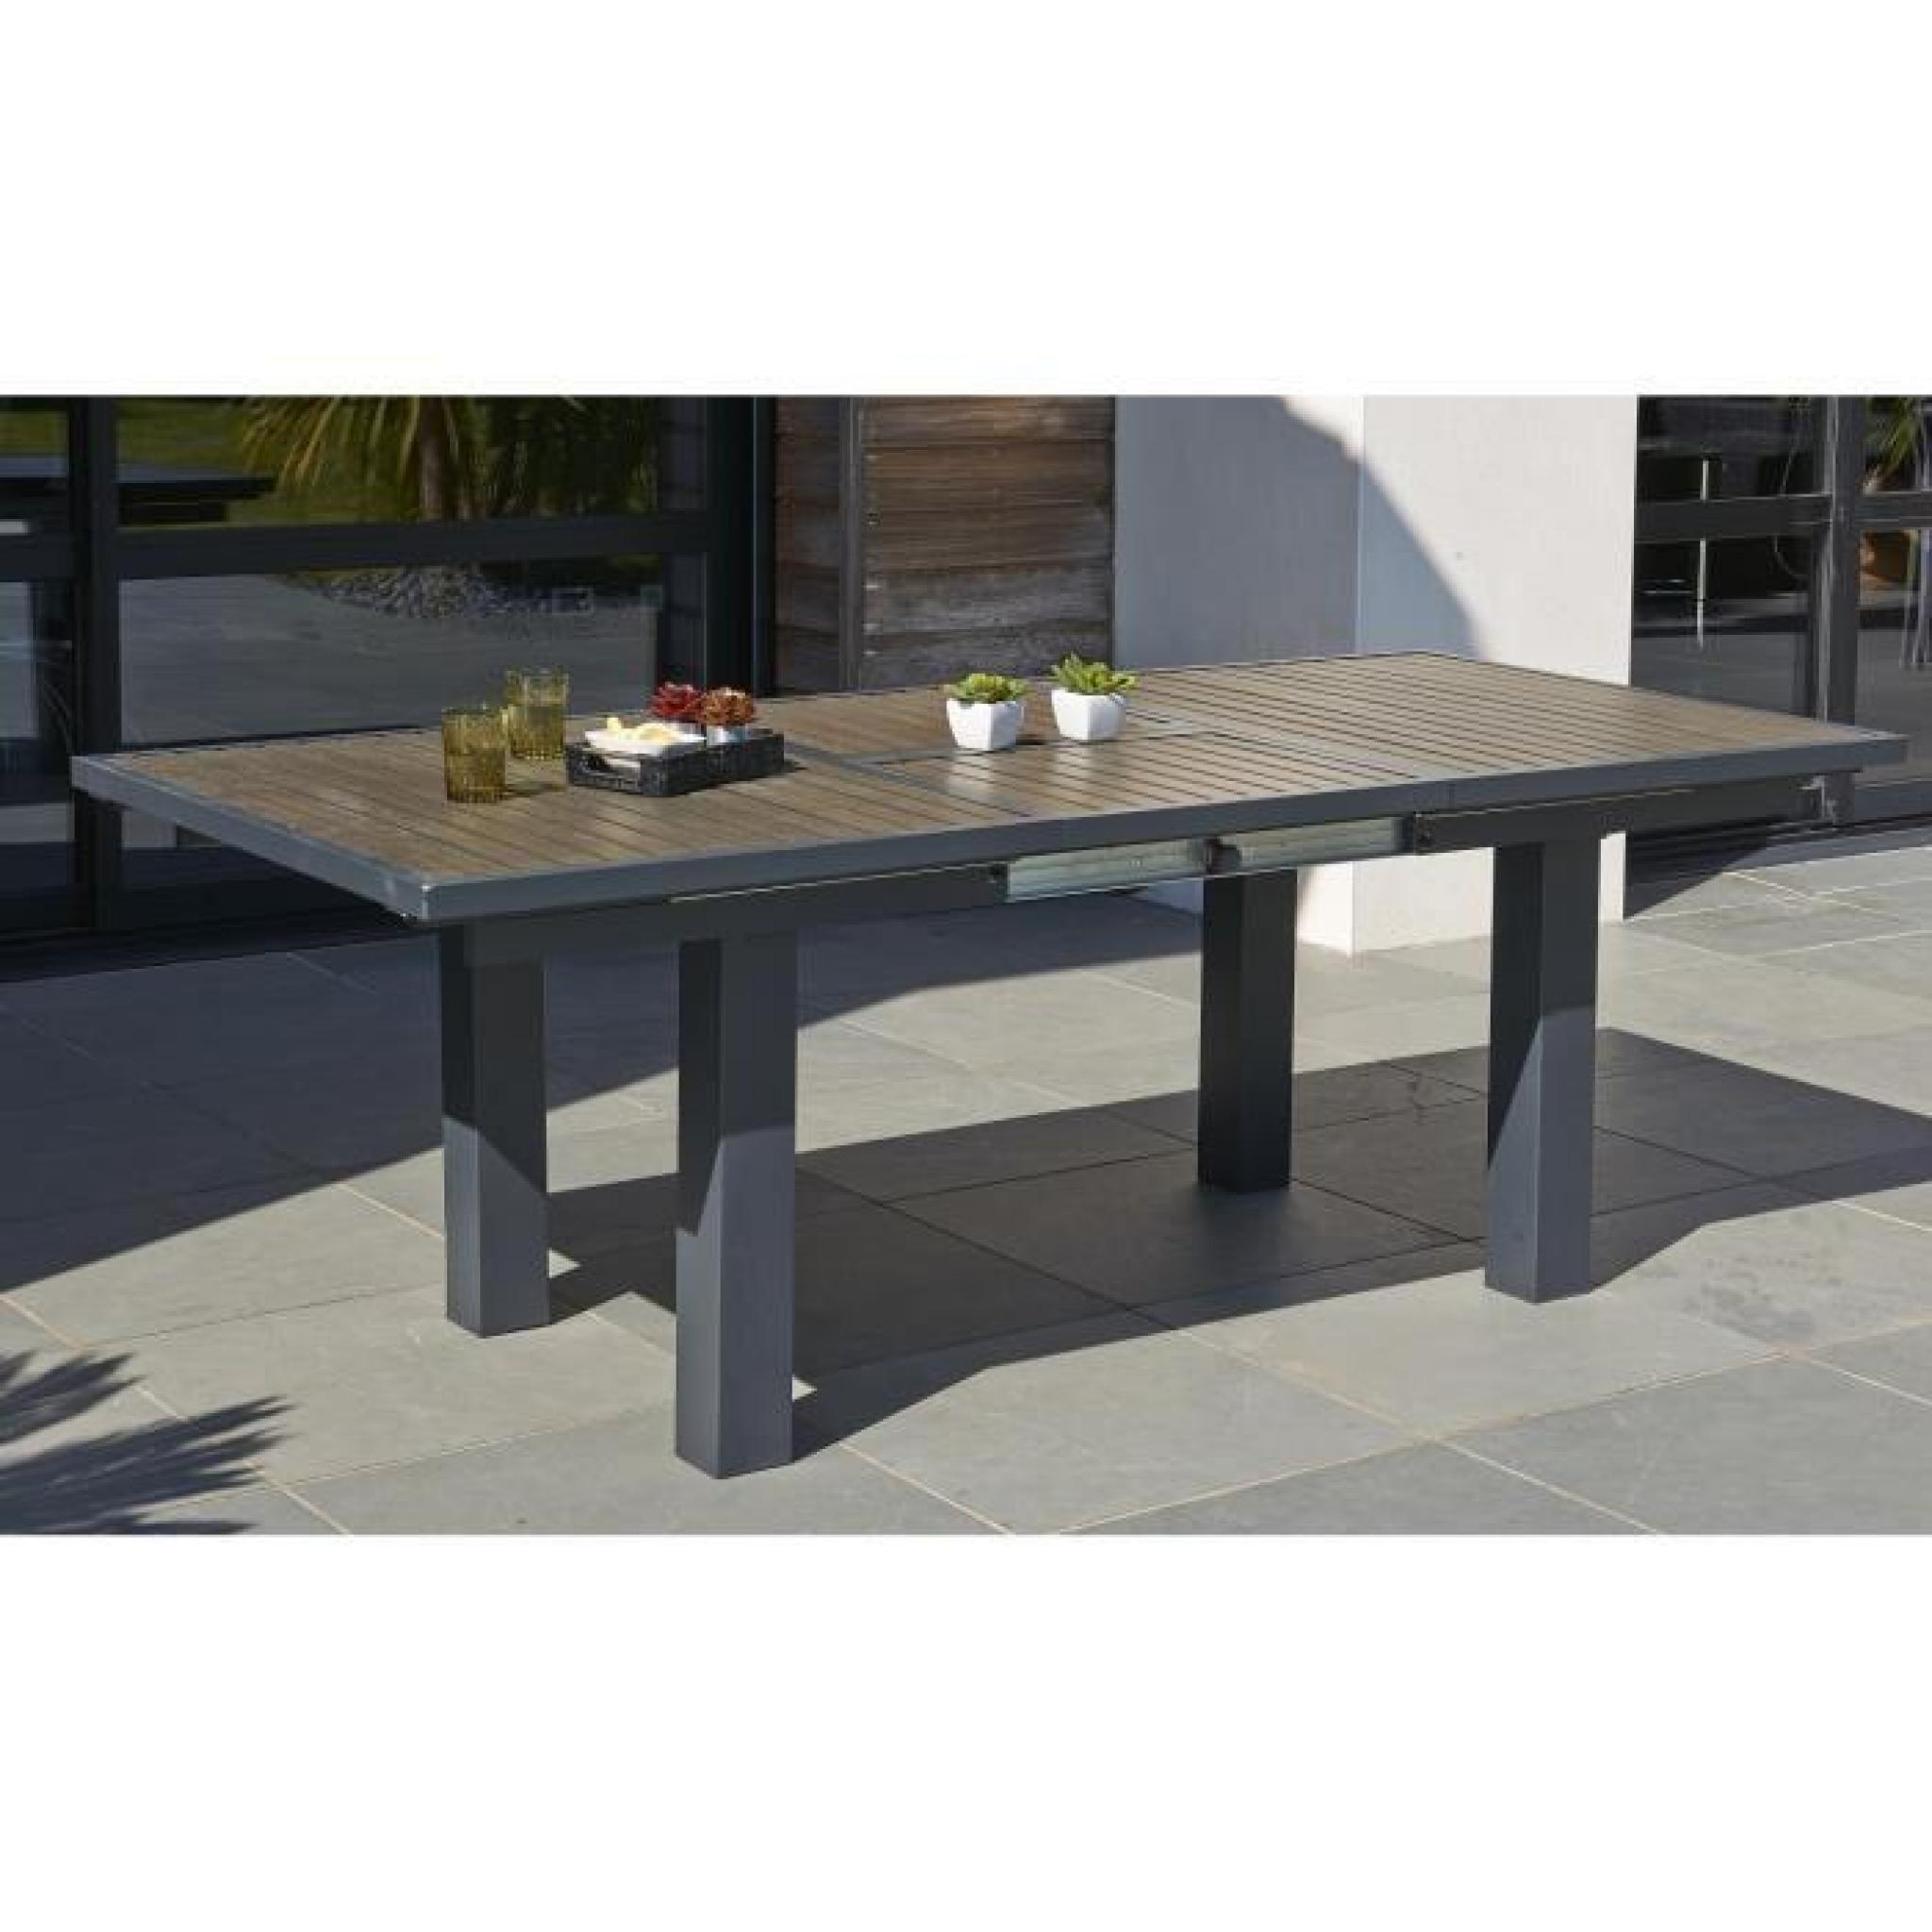 Extensible Aluminium Chaises Table Pliantes Ensemble De Cm6 220 Gris Jardin 160 Composite 3FTul1JKc